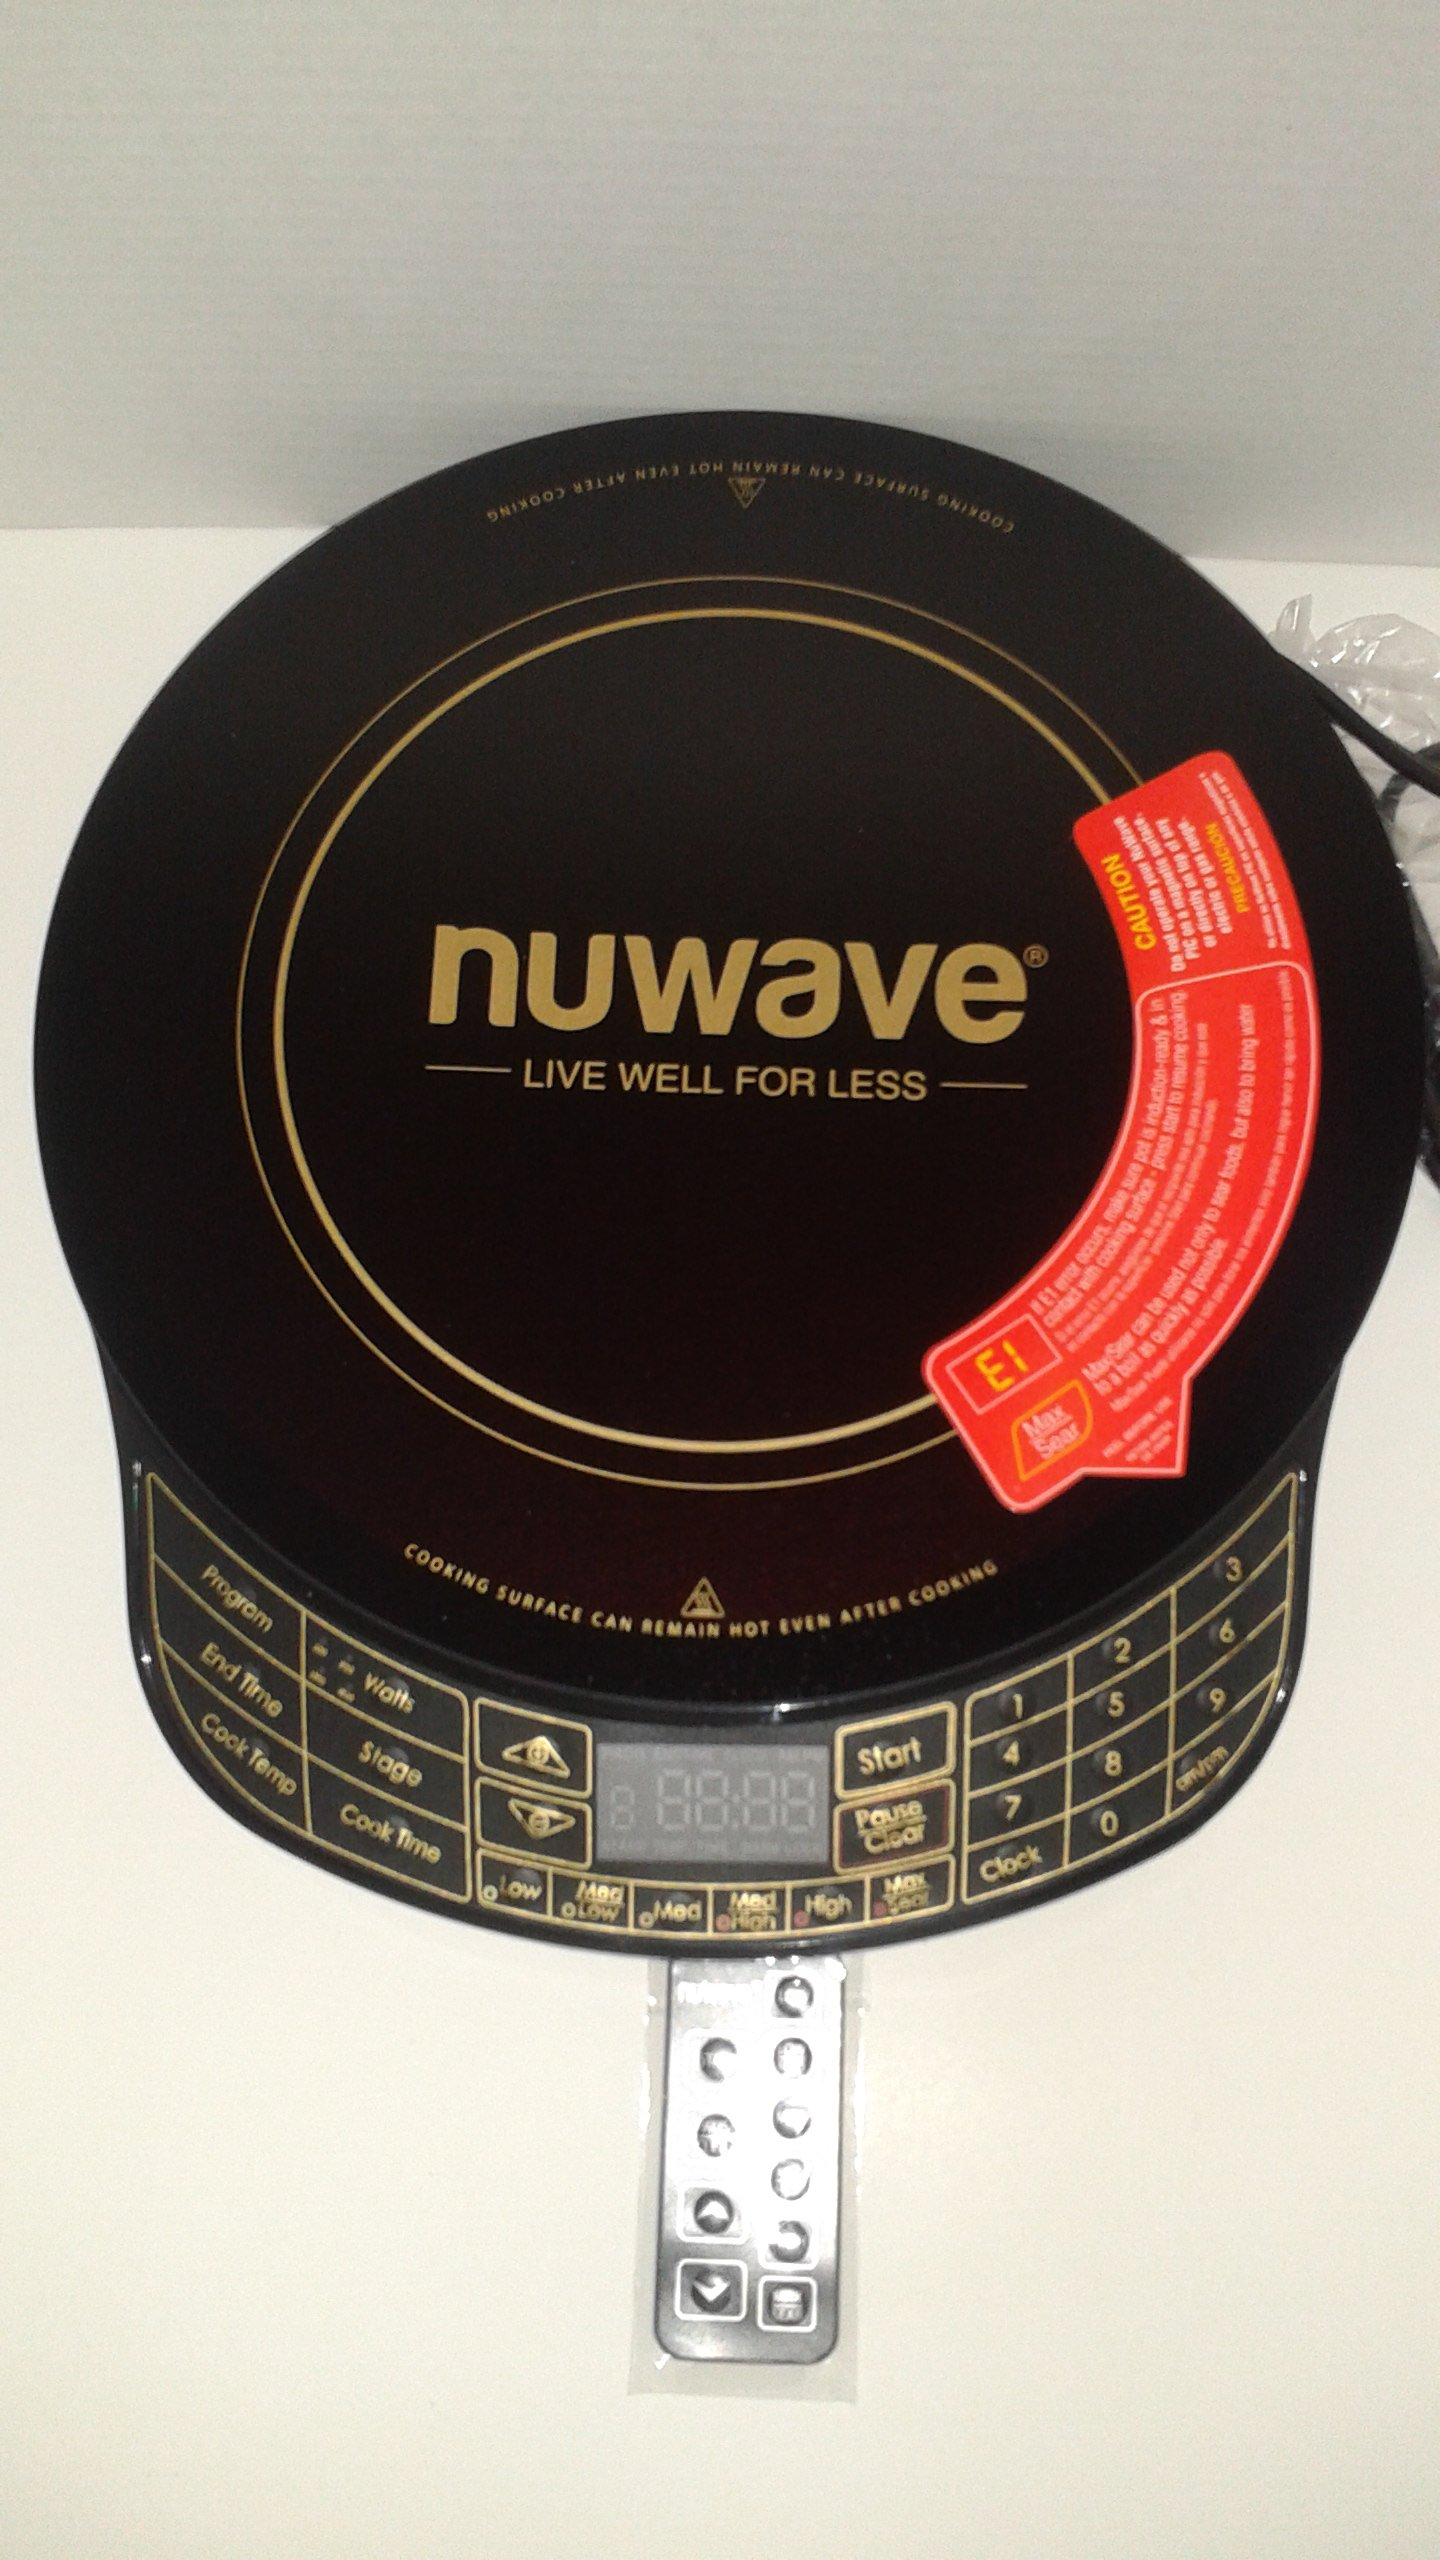 NuWave Platinum 30401 Precision Induction Cooktop, Black with Remote and Advanced Features for 2017 by NuWave (Image #5)